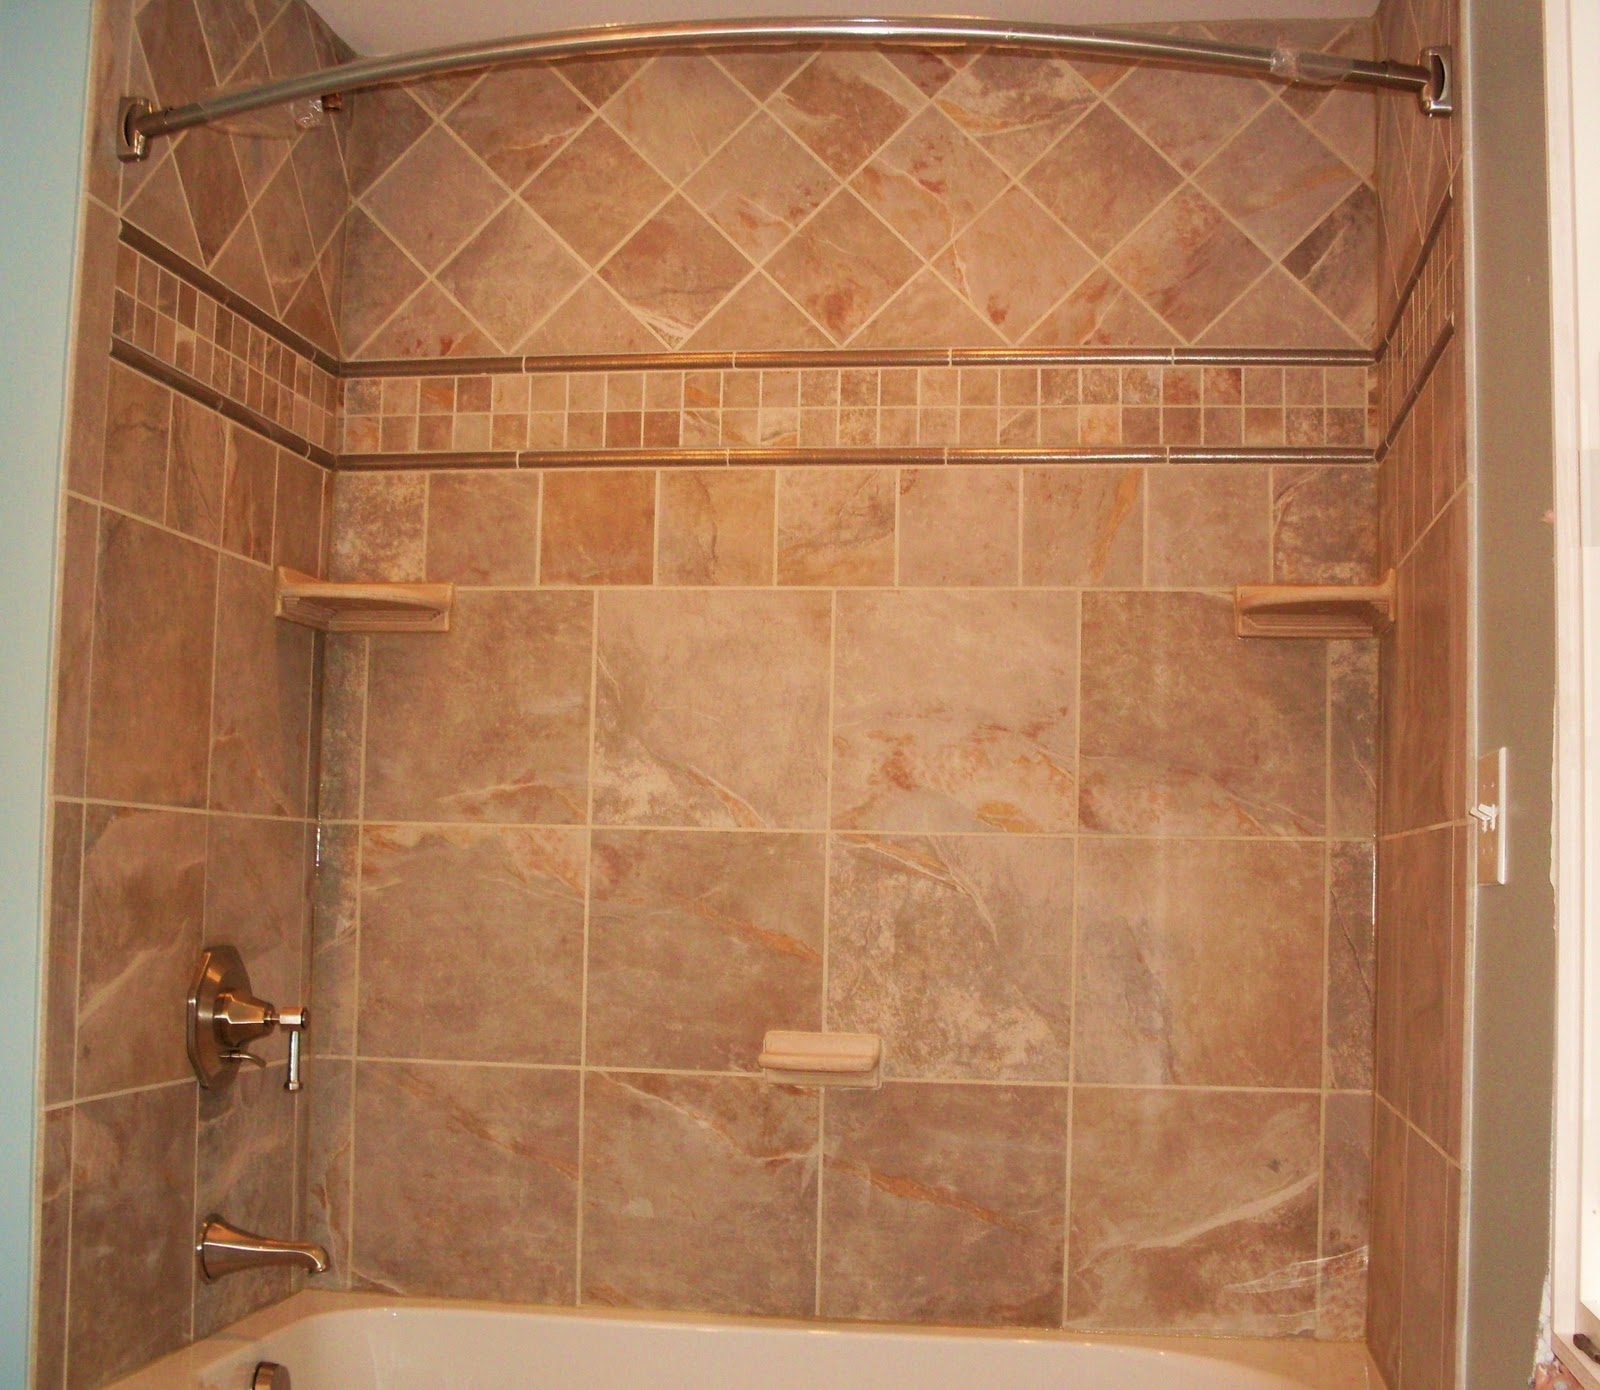 Bathroom Tub And Shower Tile Designs : Remodel ideas on tile tub surround